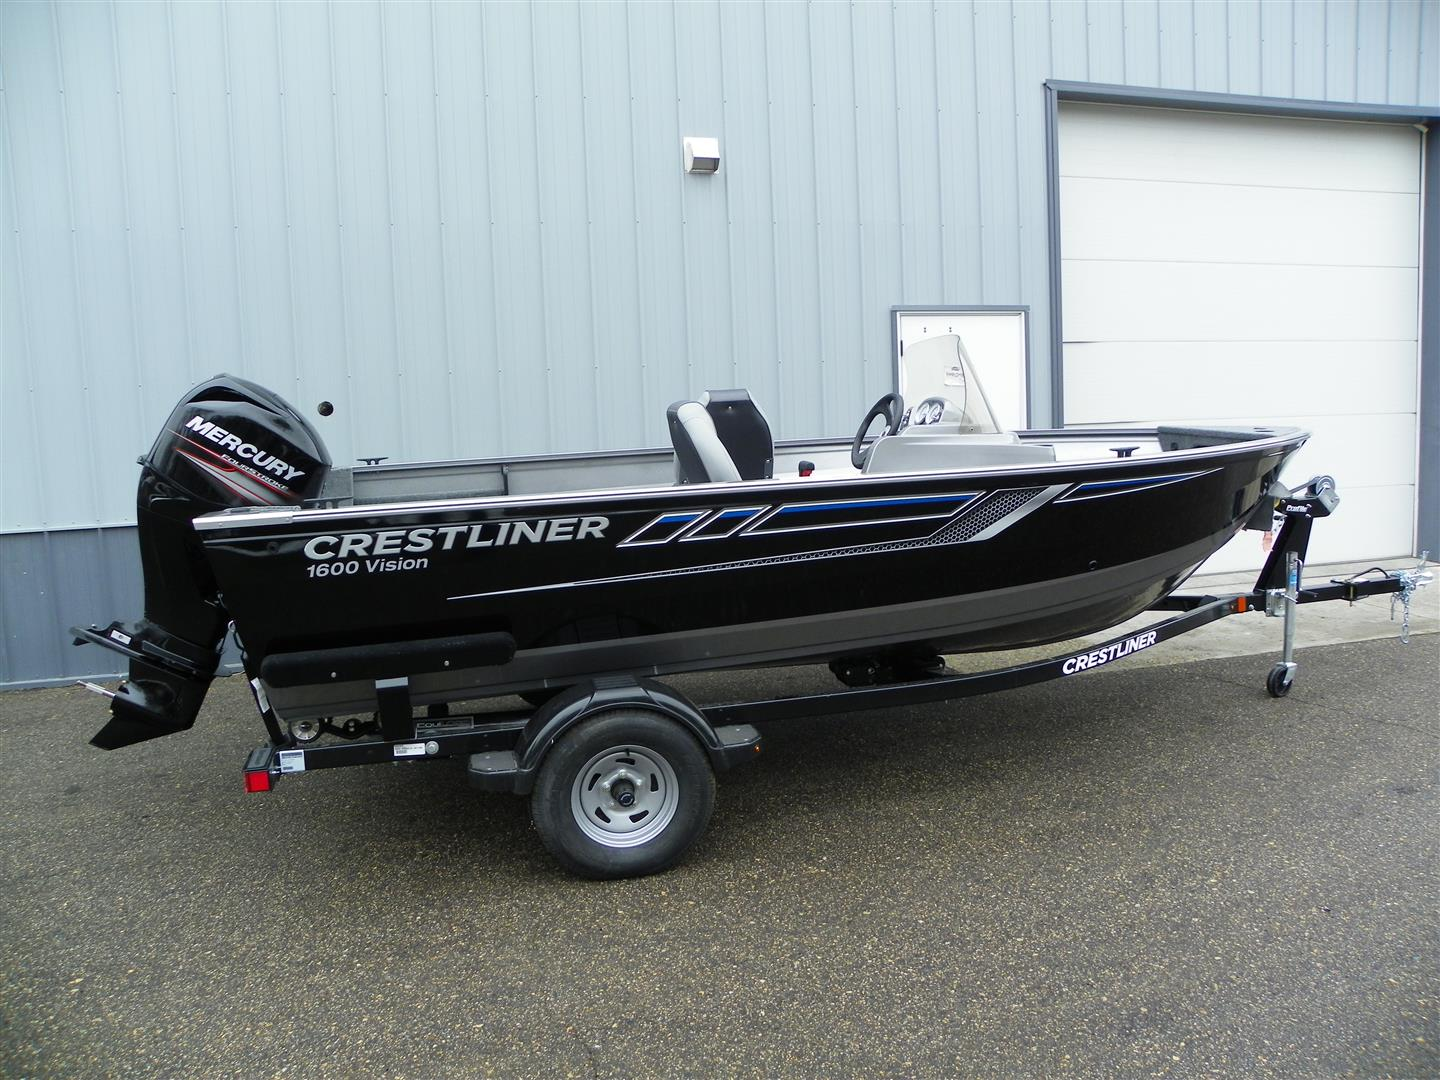 Inventory from Crestliner Boomerang Marine & Sports